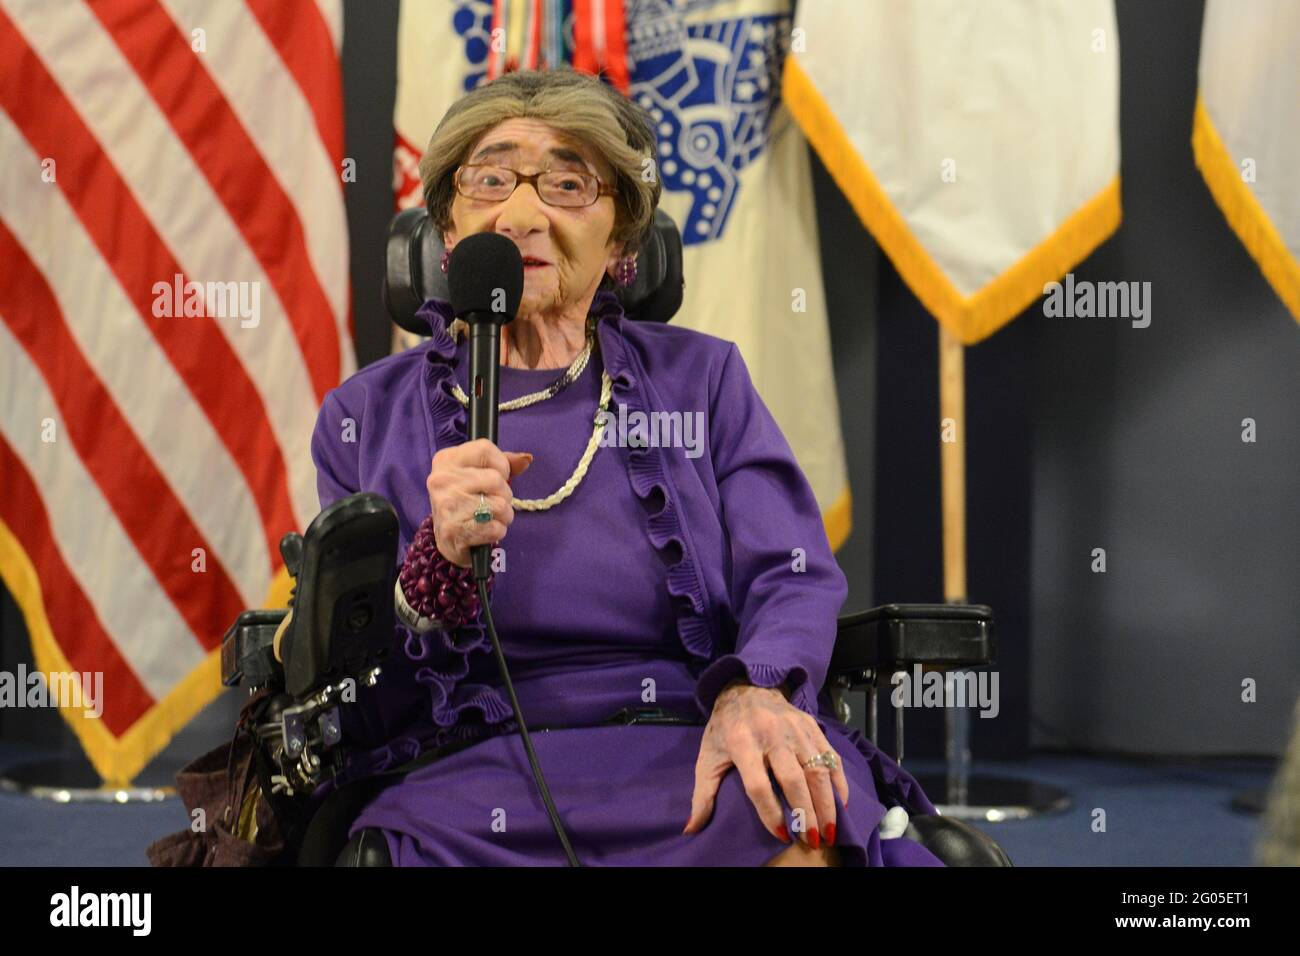 Reportage:   World War II Army veteran 106-year-old Alyce Dixon talks about her experiences as a member of the Women's Army Corps, during a women's history month event at the Pentagon, March 31, 2014. Dixon was honored with a Department of the Army Lifetime Achievement Women of Character, Courage and Commitment award, and a Women's History Month certificate of appreciation. During World War II, Dixon served in Europe as a member of the 6888th Central Postal Directory Battalion. The 6888th was the only unit of African-American women in the WAC to serve overseas in England and France during Worl Stock Photo